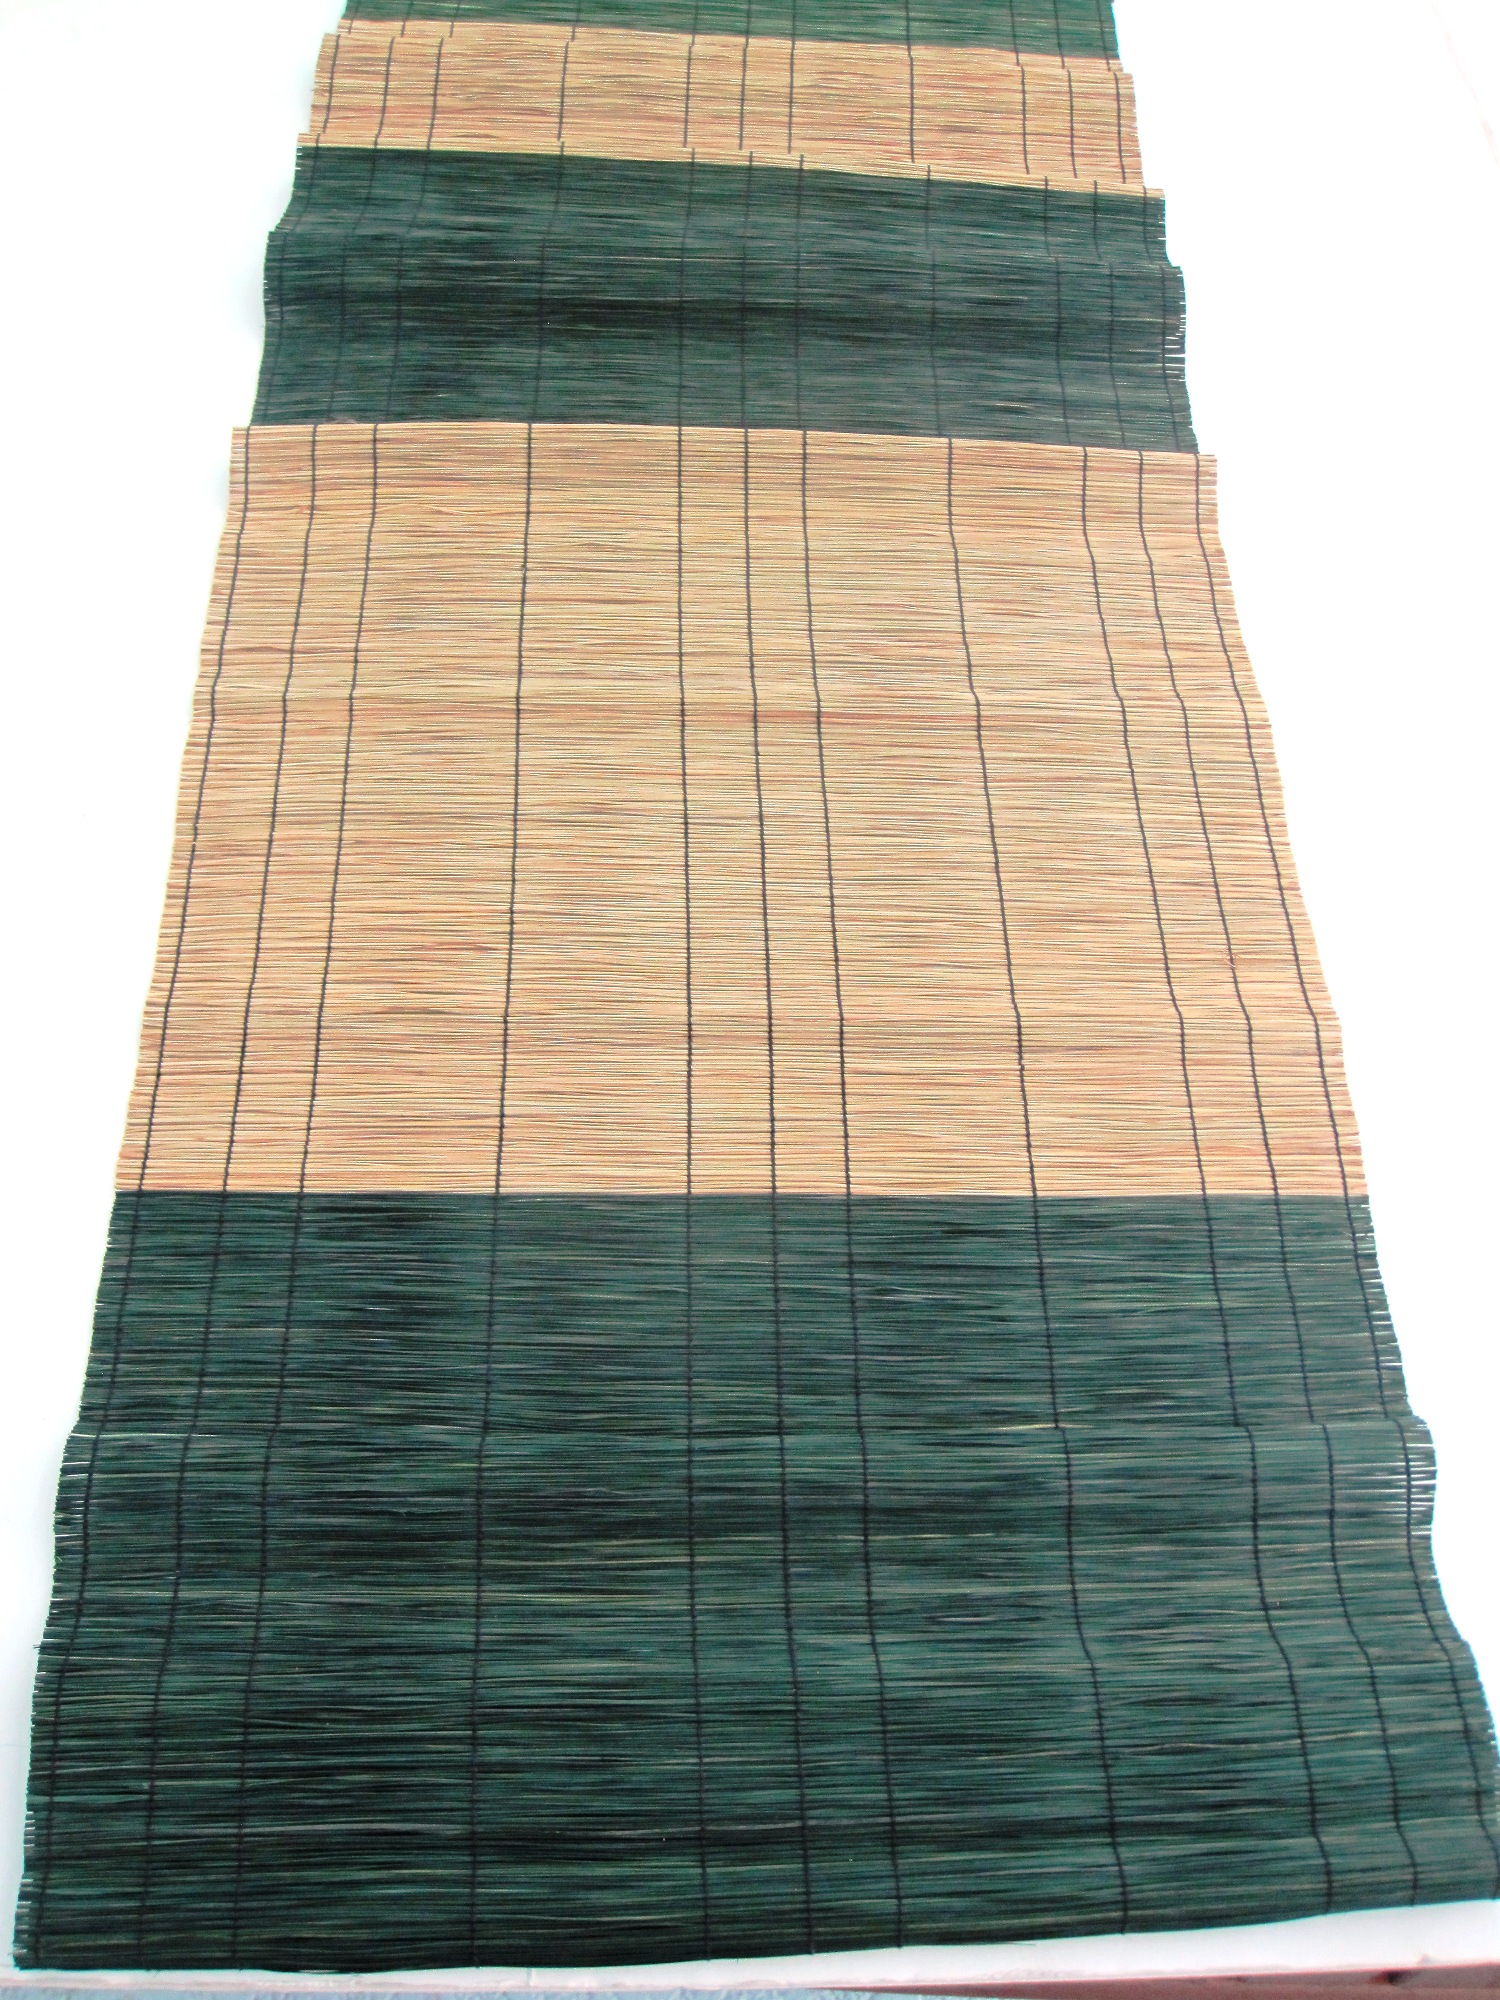 Handwoven Table Runner - Basket of Chocolate